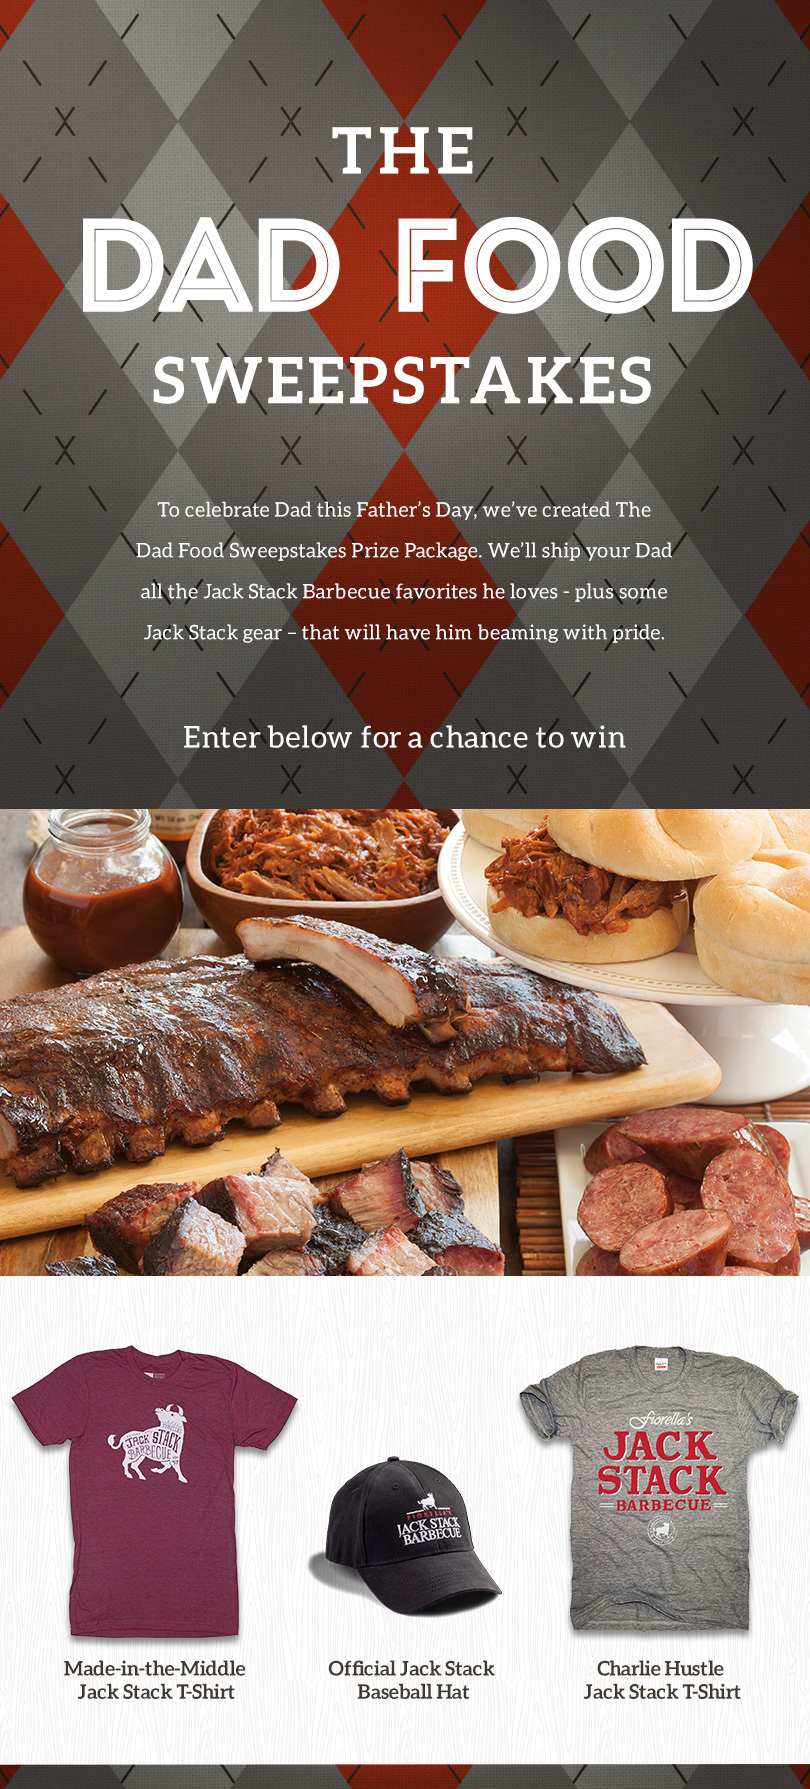 The Dad Food Sweepstakes